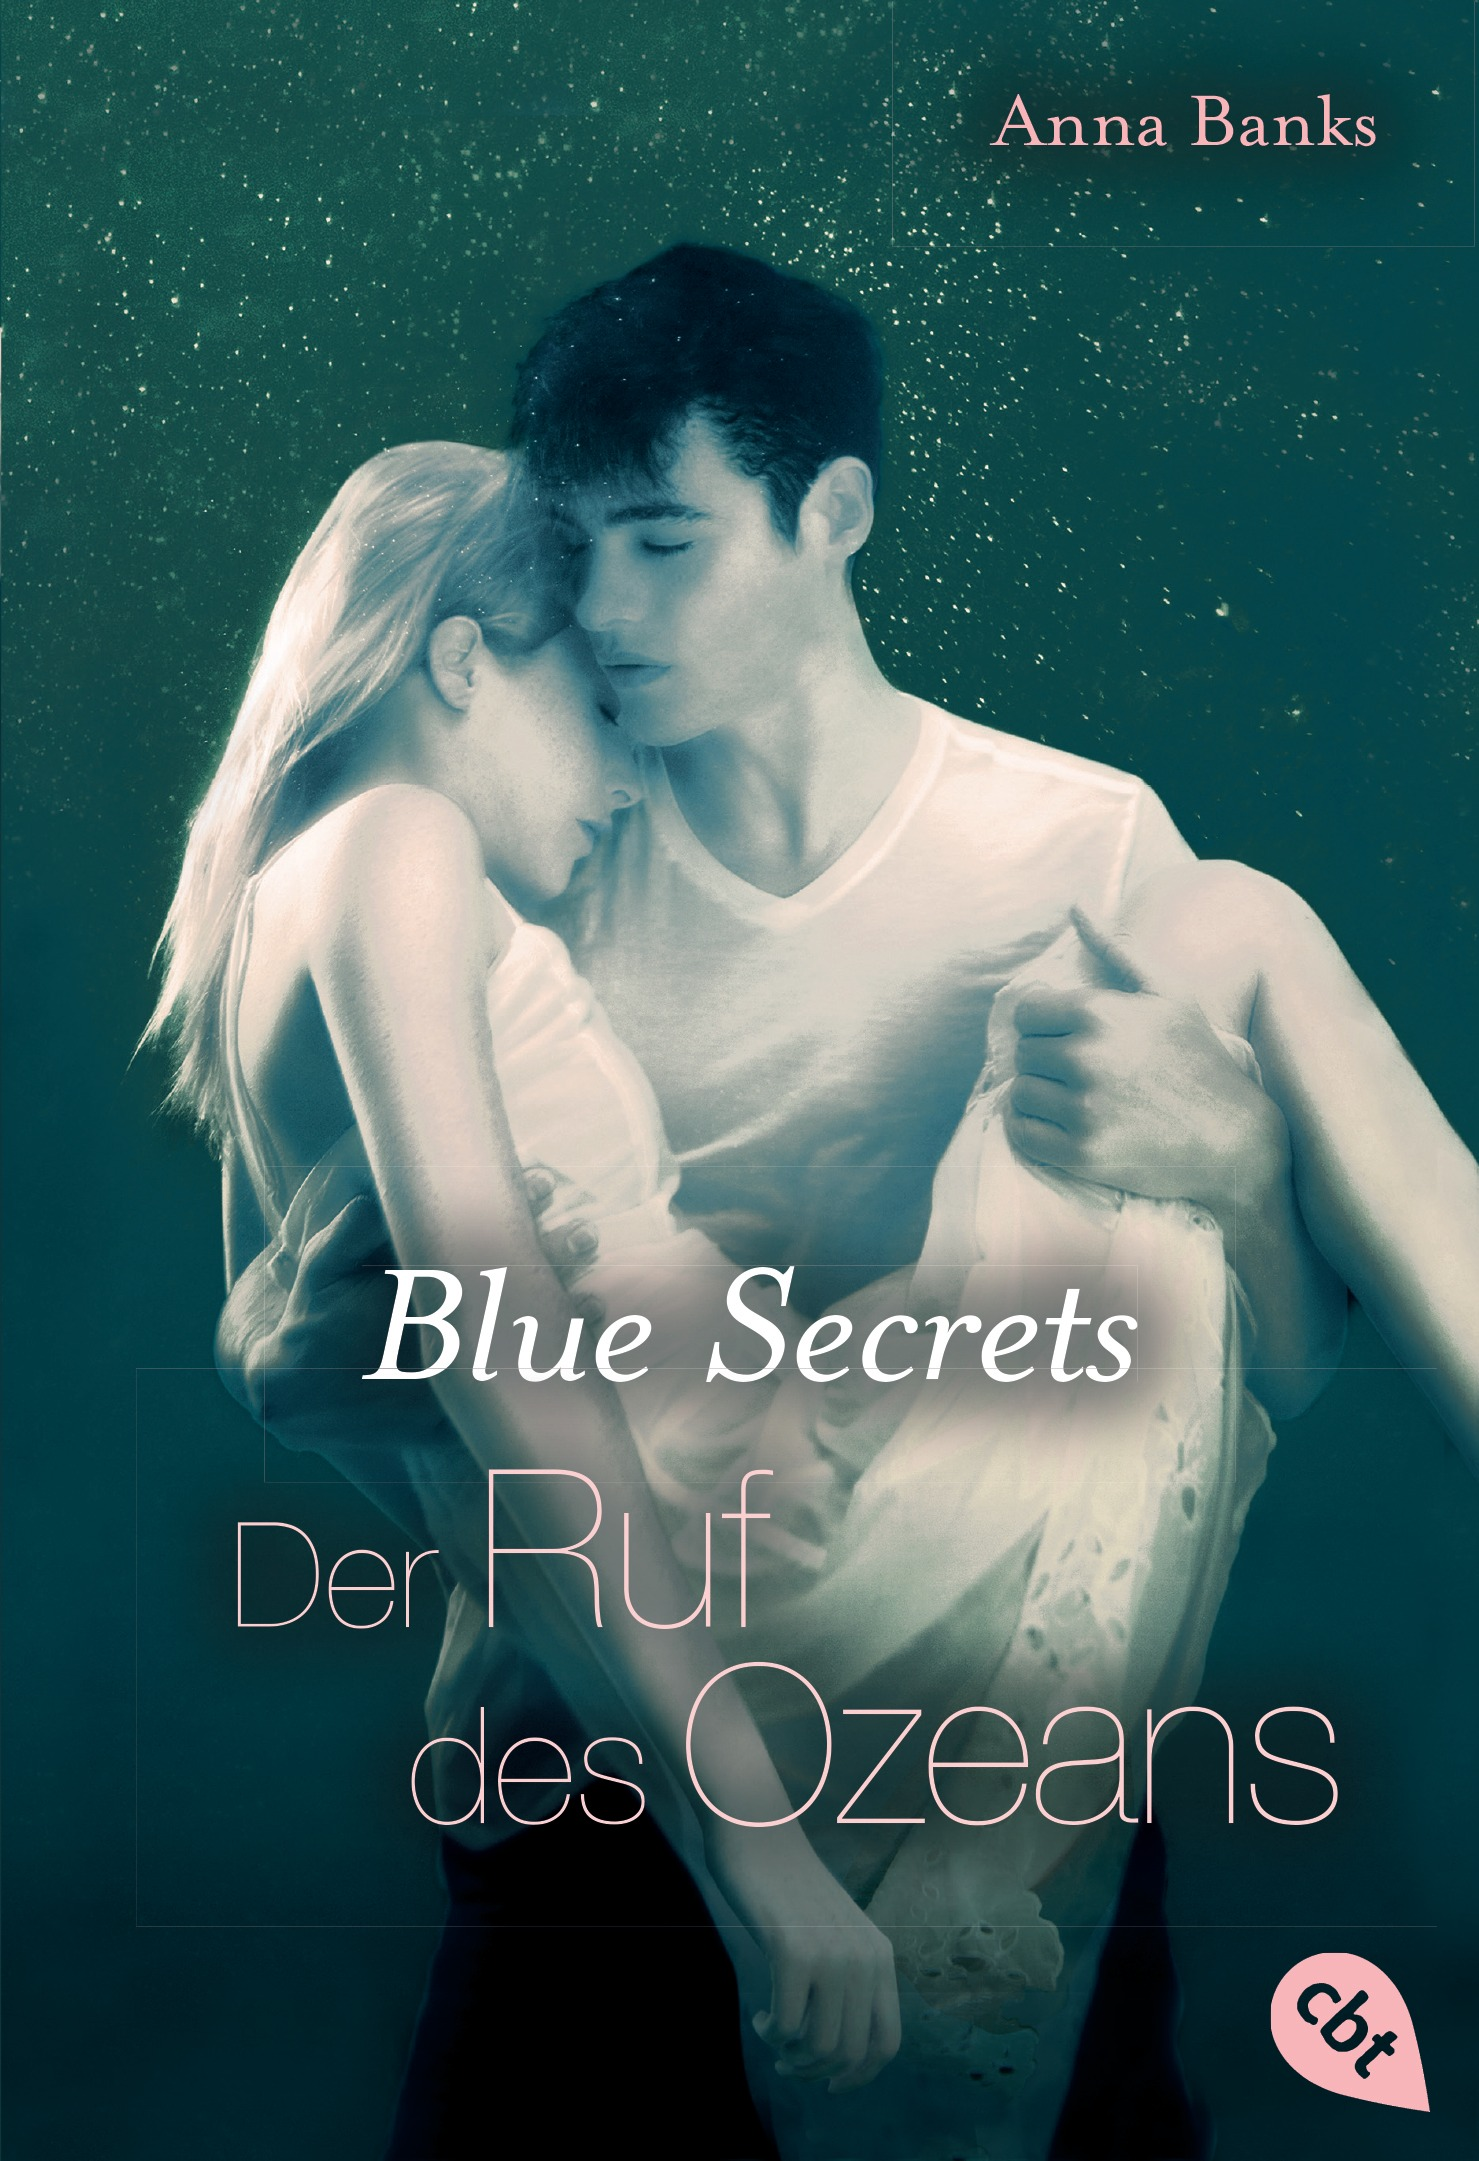 http://www.randomhouse.de/content/edition/covervoila_hires/Banks_ABlue_Secrets_03_155927.jpg